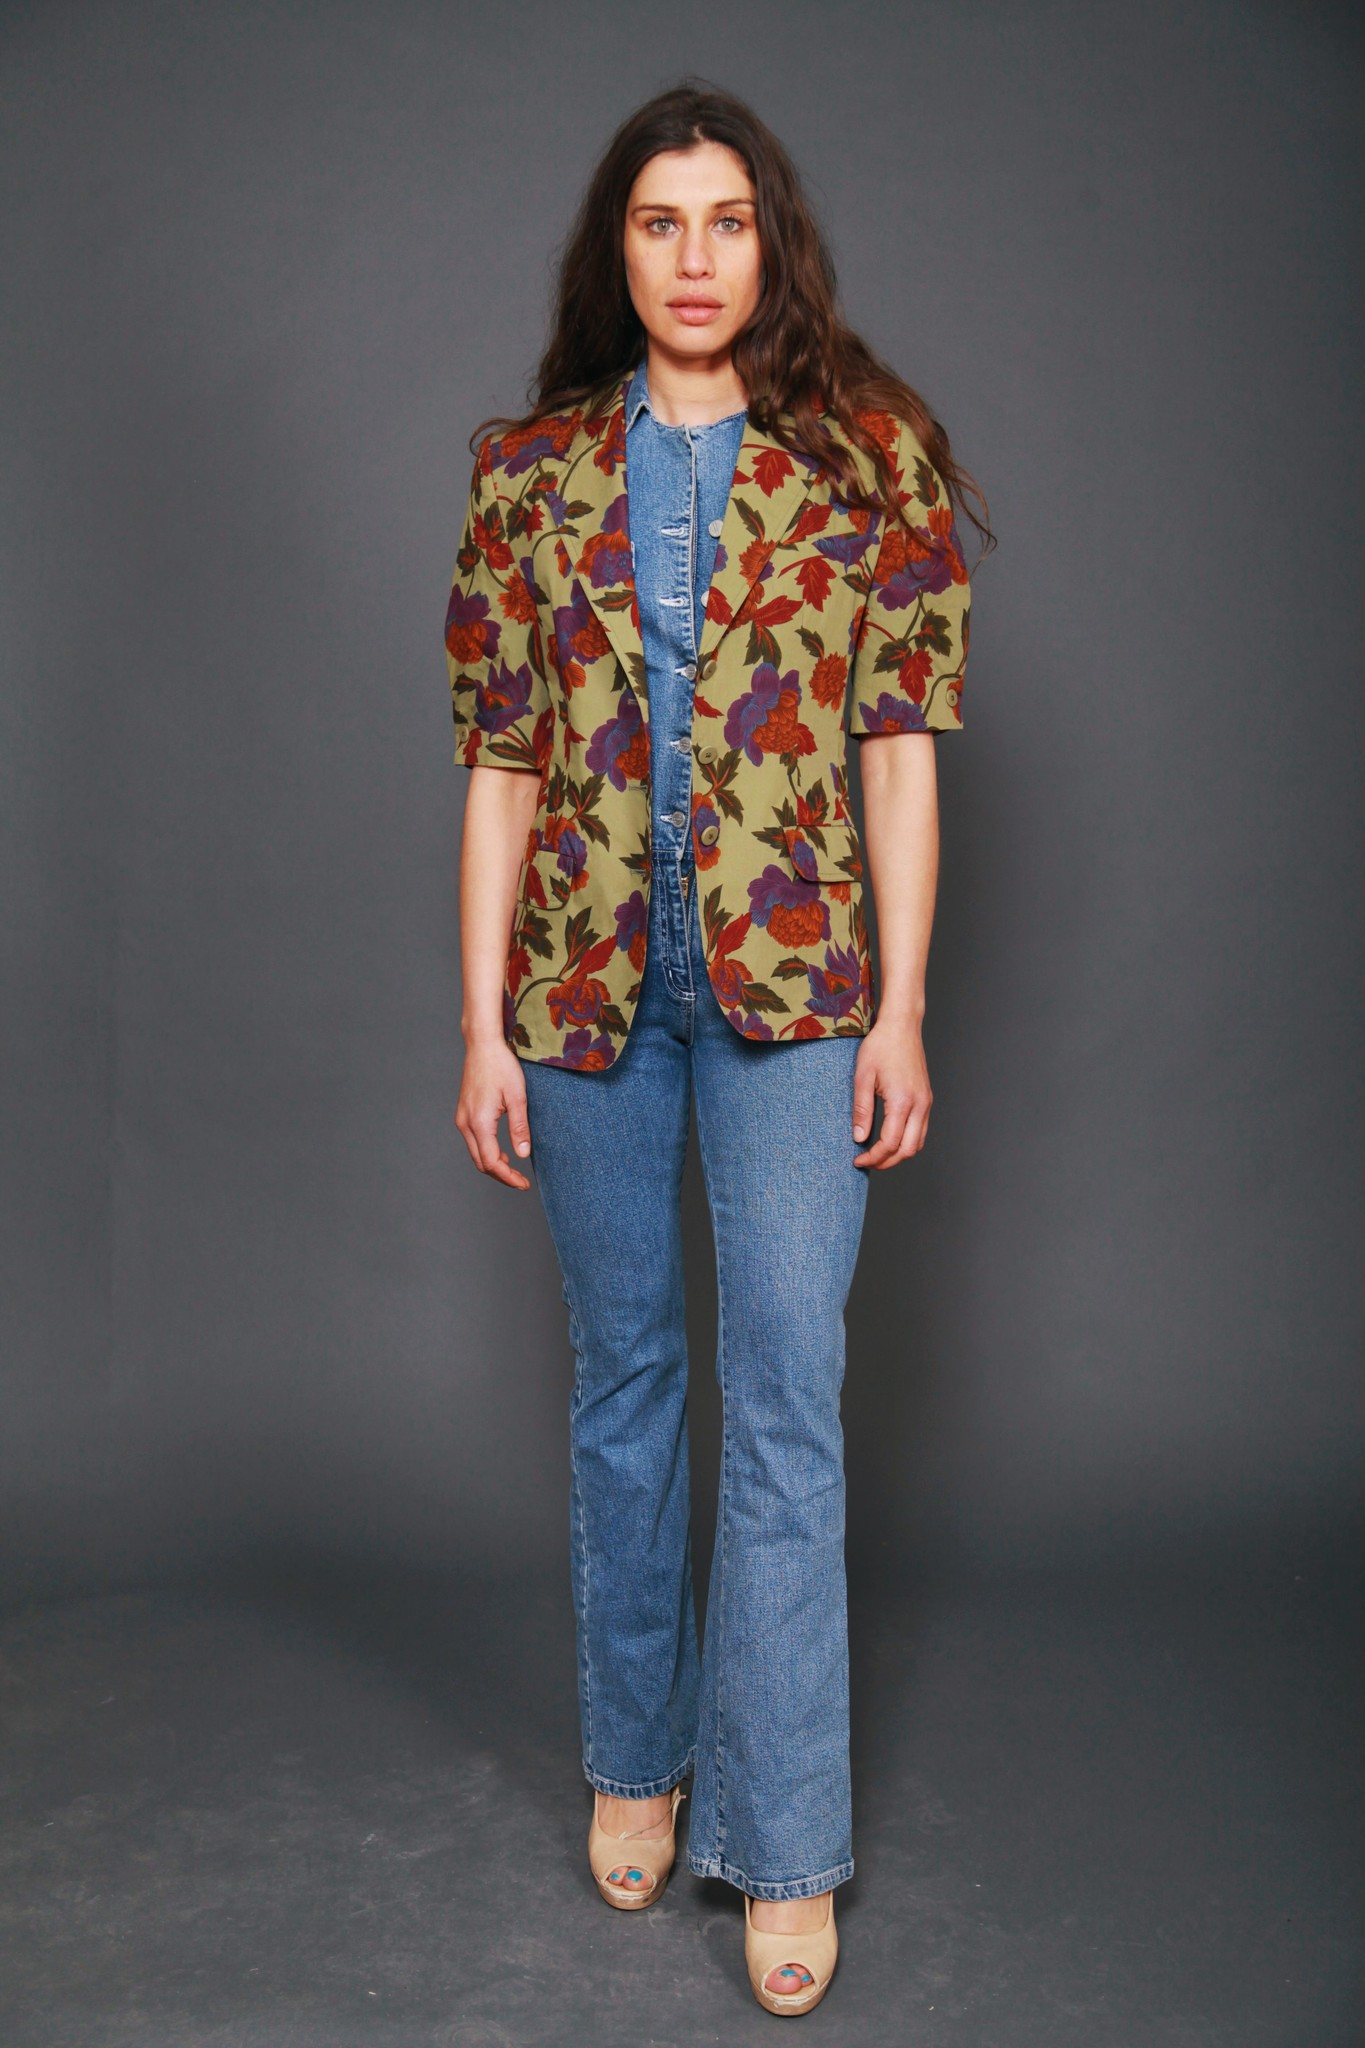 Floral 80s jacket with short sleeves